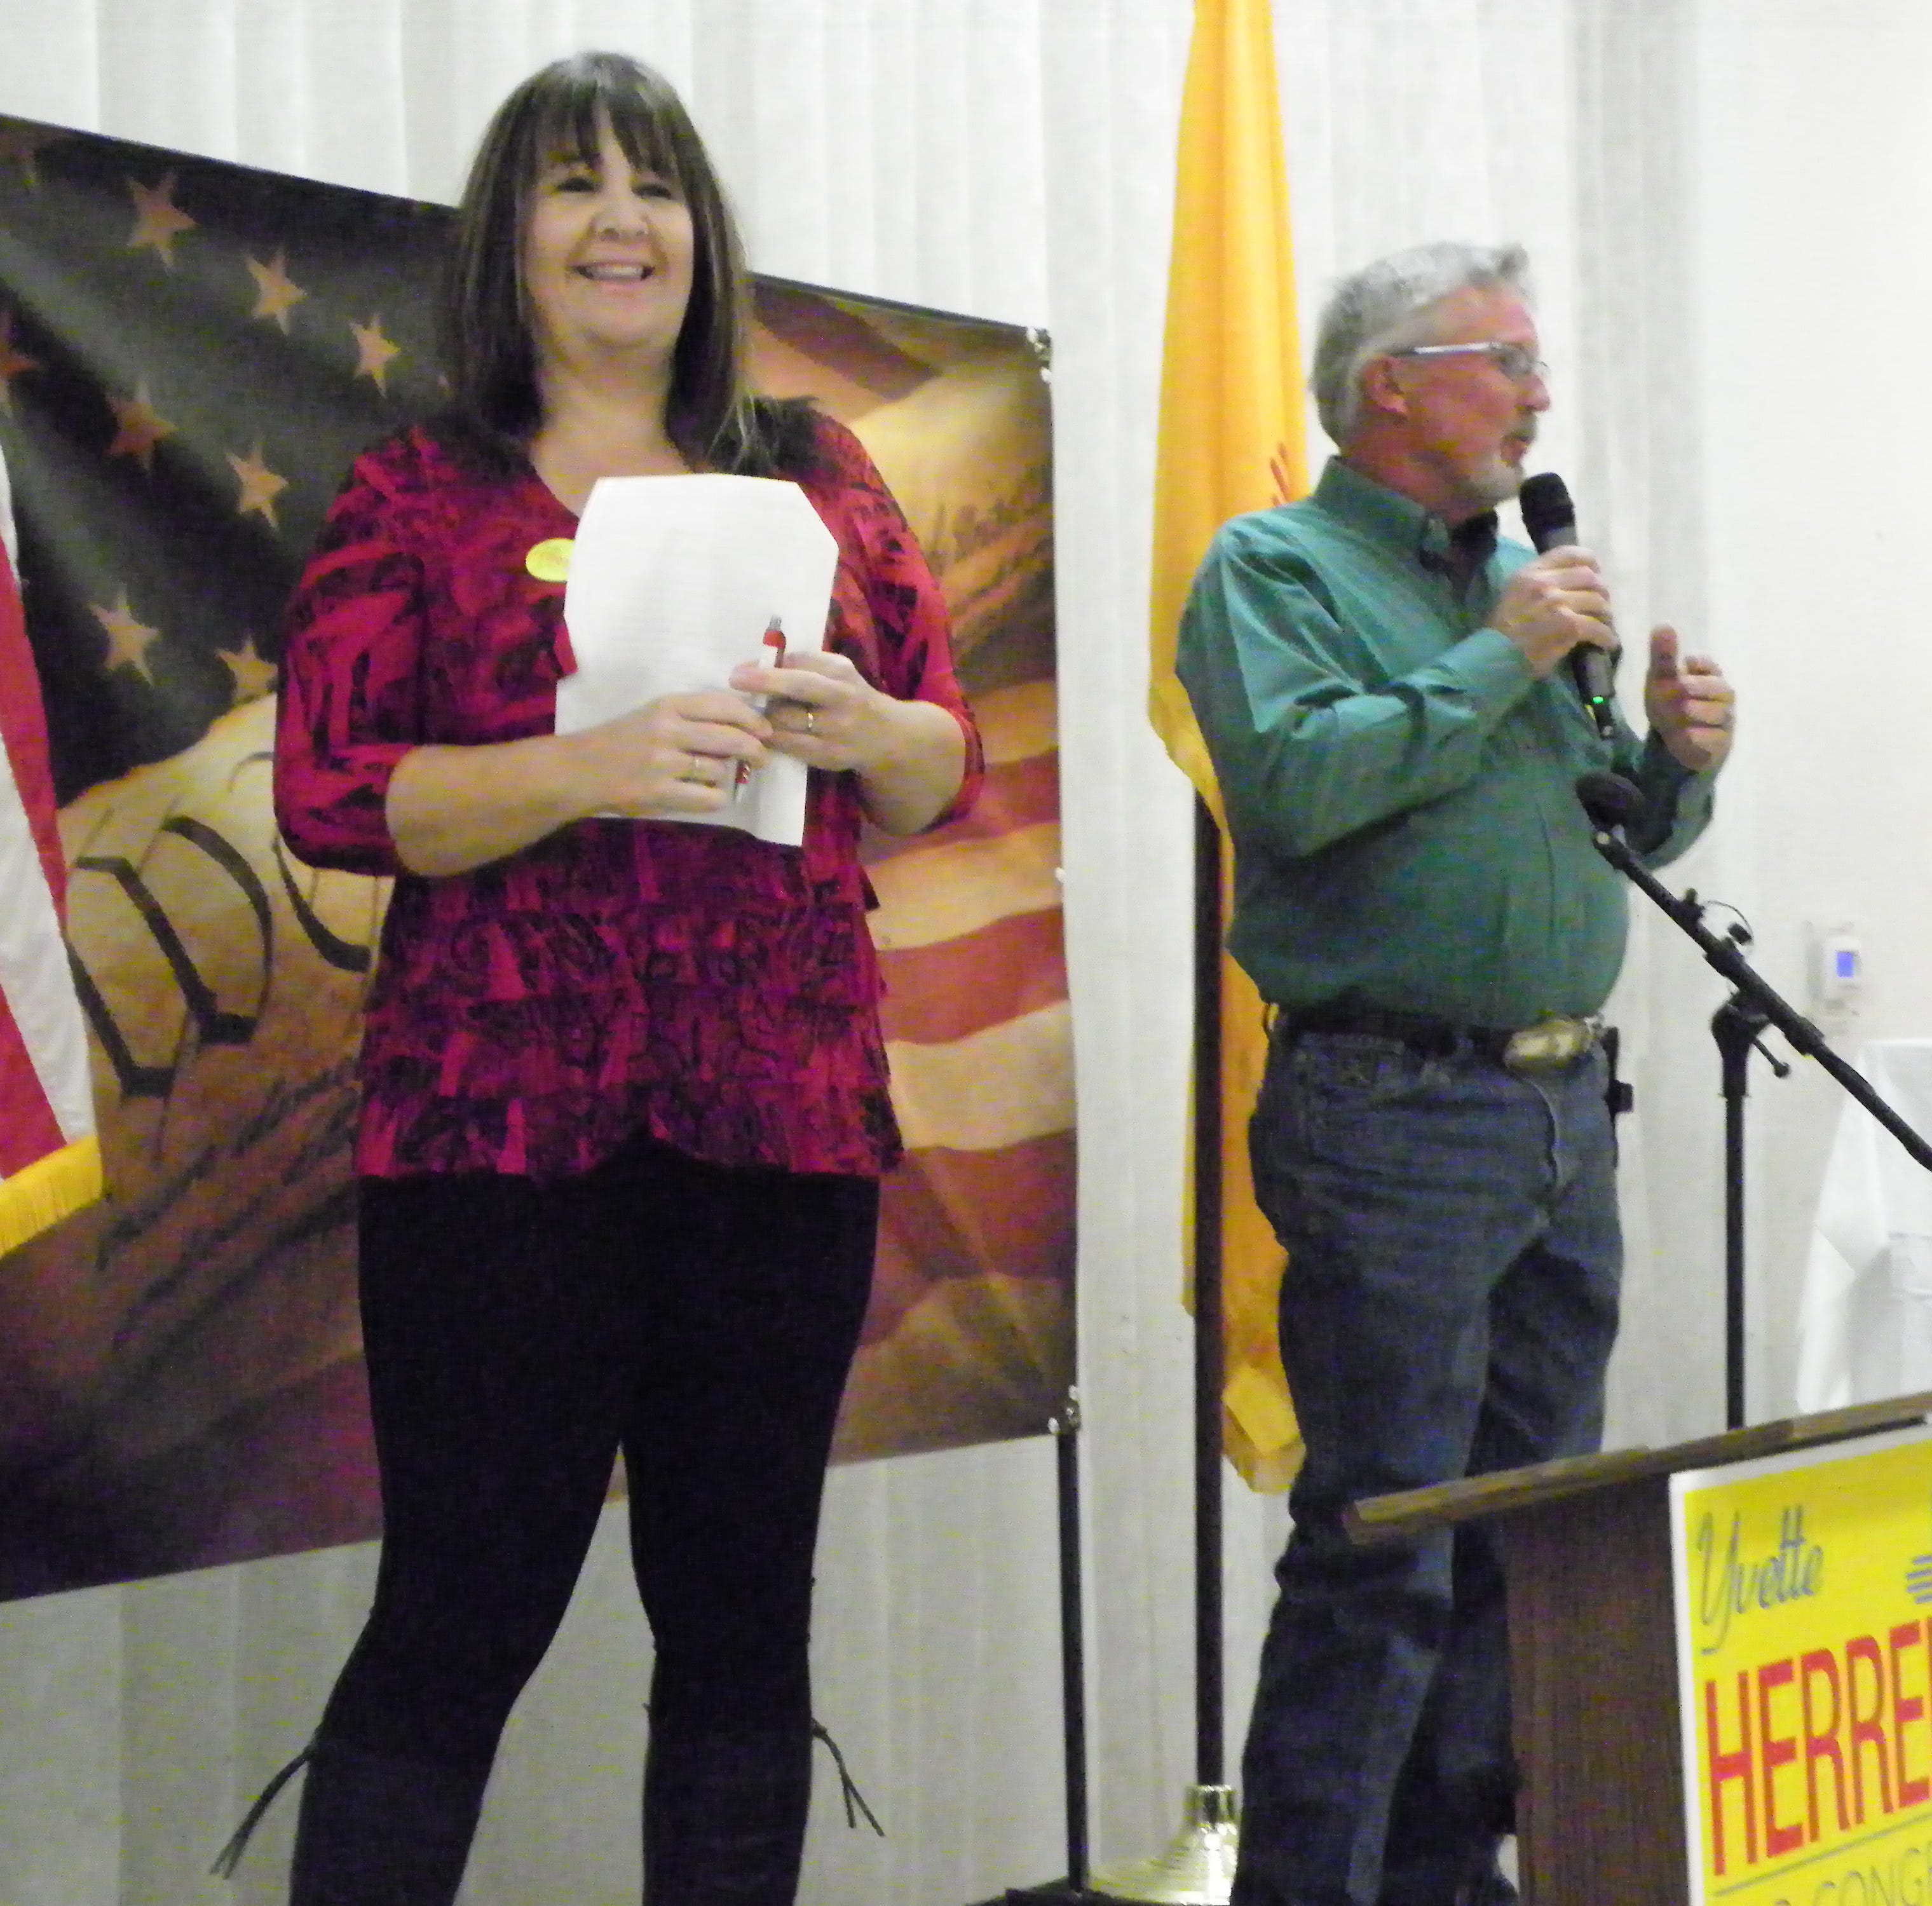 Republicans win every race in Otero County